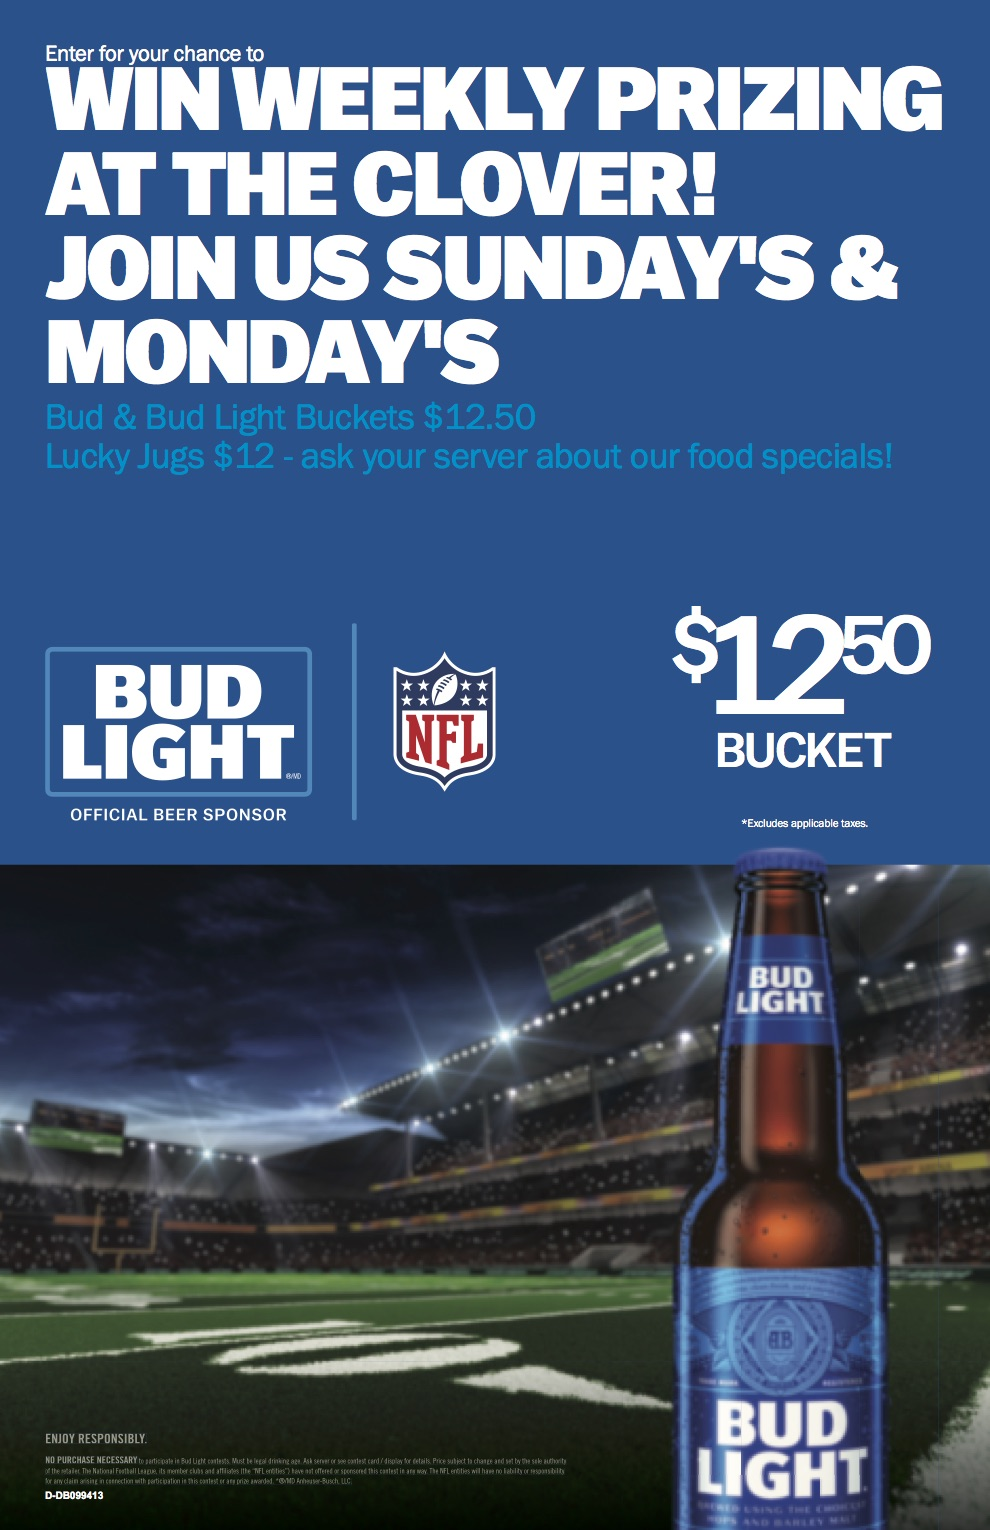 NFL Football, Every Sunday, Monday, Prizes plus awesome drink specials: $12 jugs of Lucky Lager $12.50 buckets of Bud Light$5 Coronas$ Ceasars  -